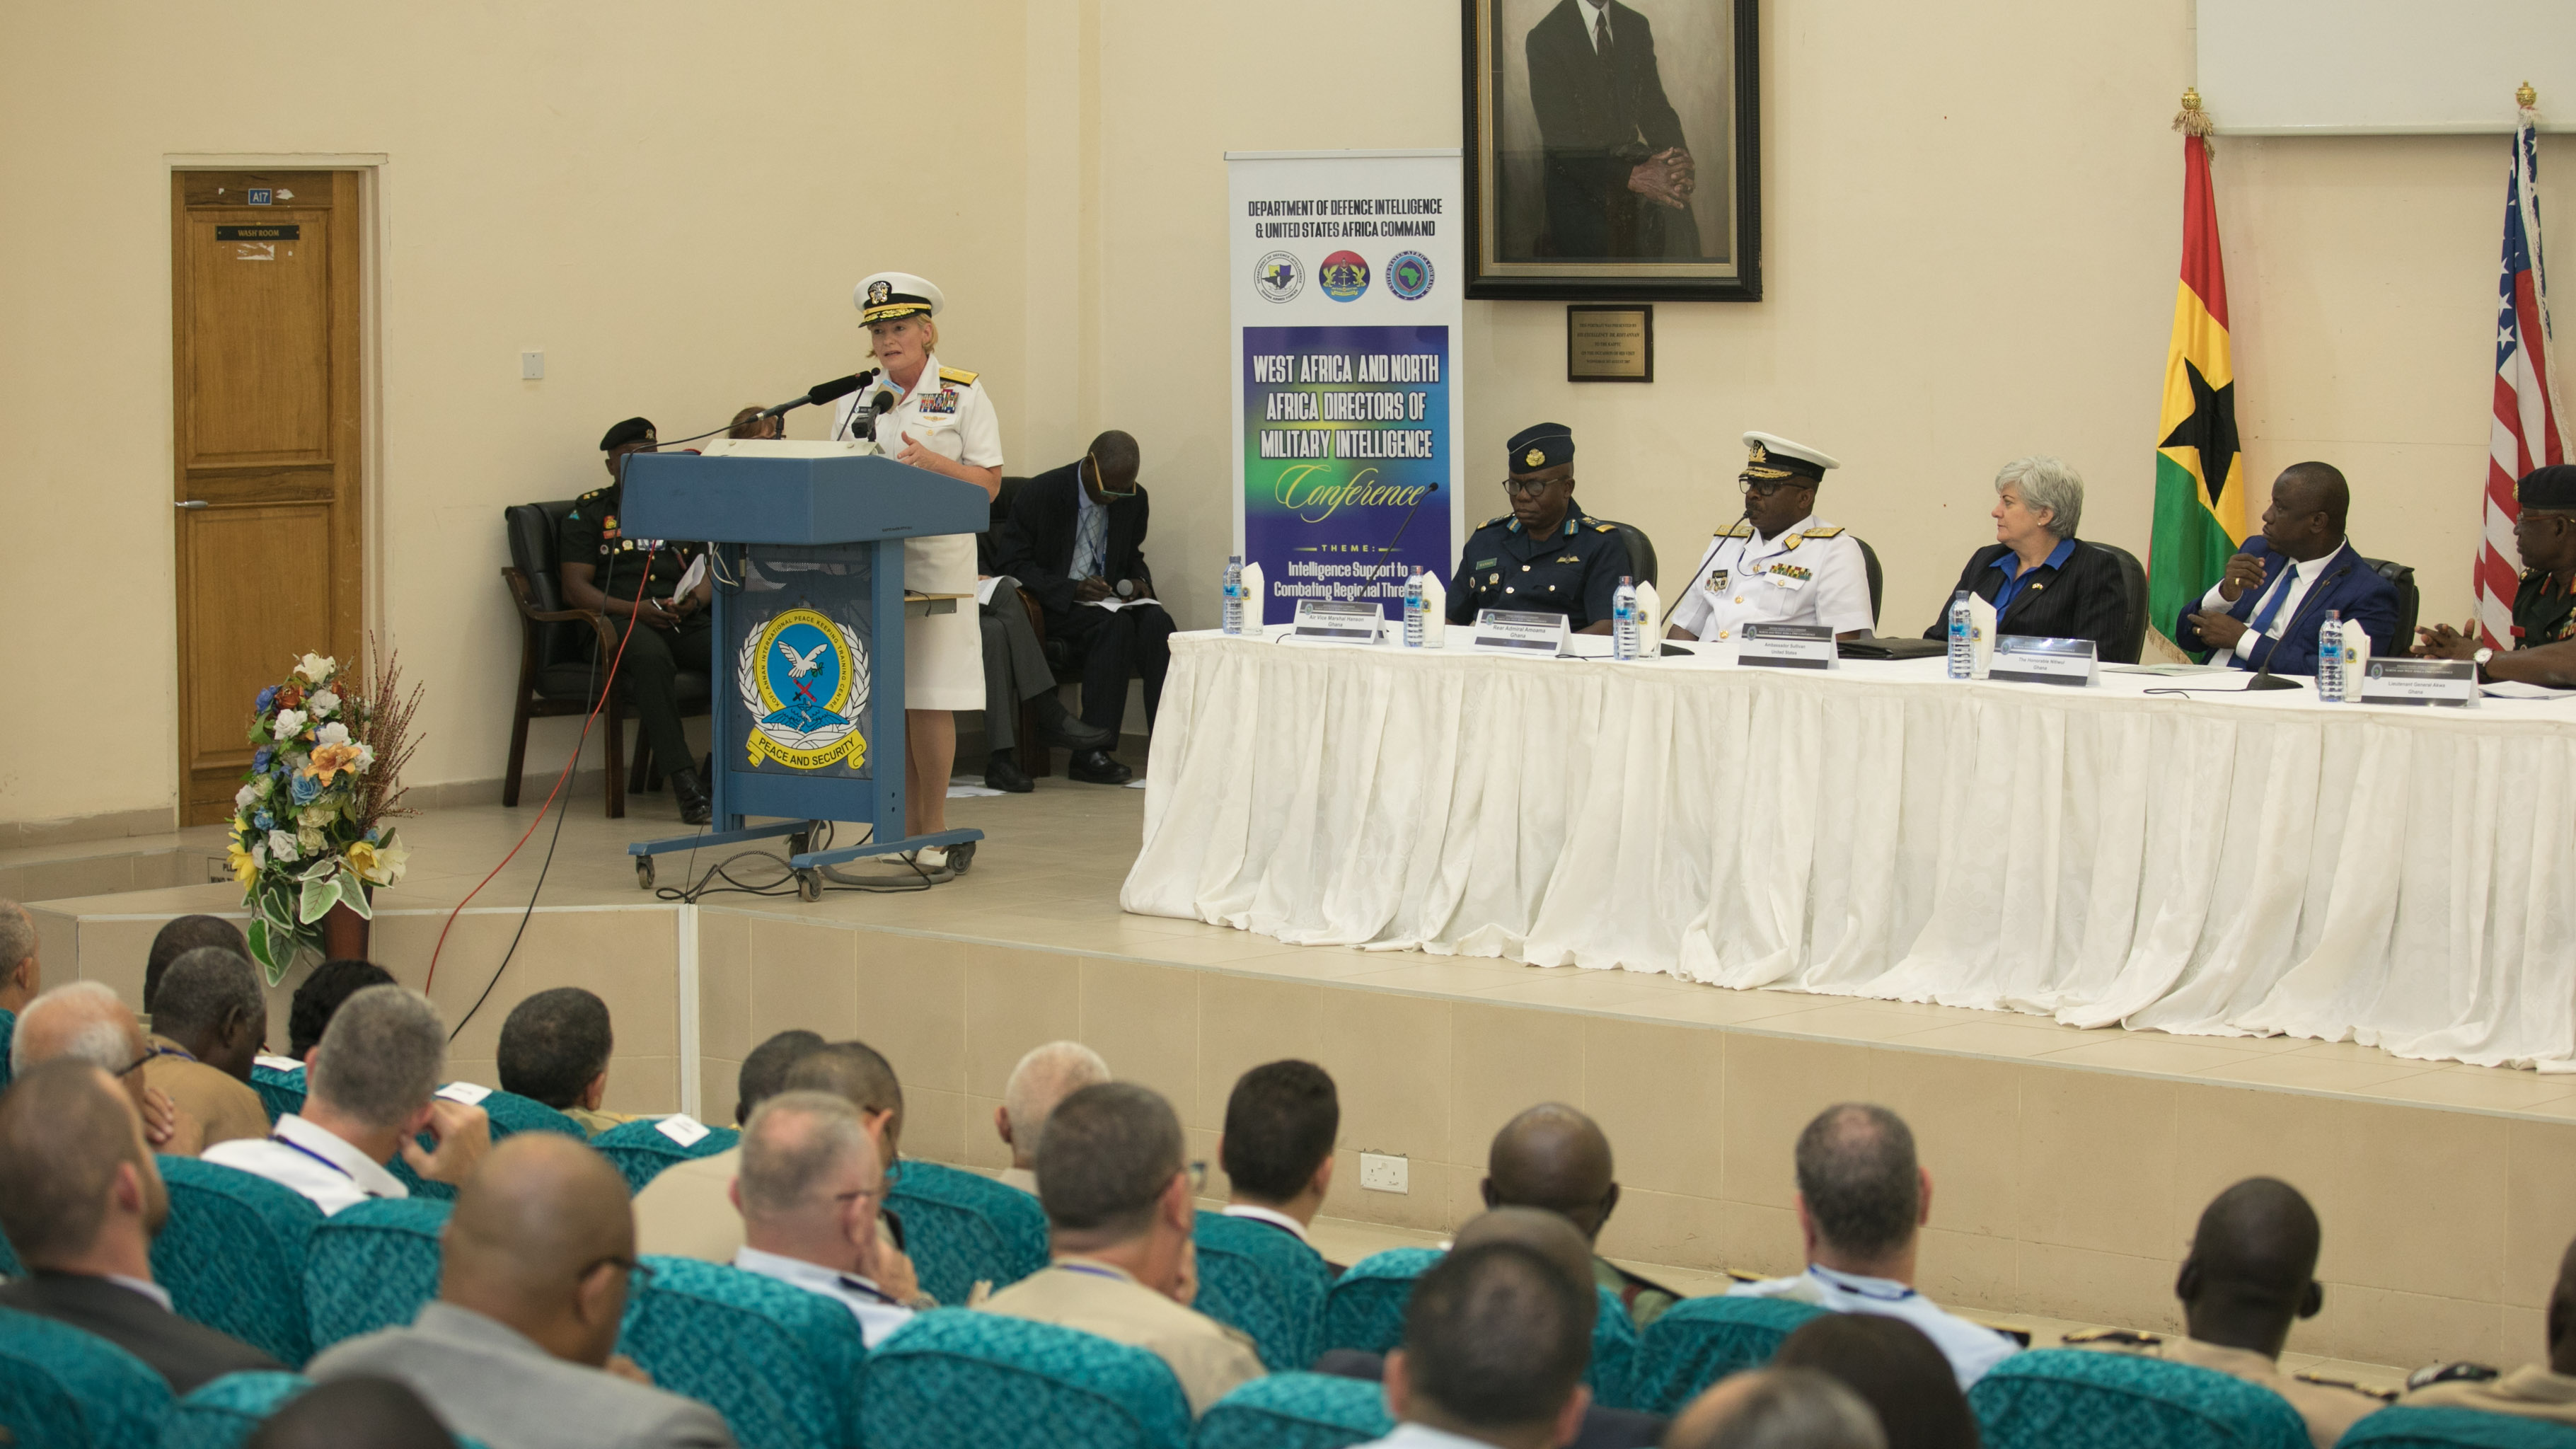 U.S. Africa Command, Director of Intelligence, U.S. Navy Rear Adm. Heidi Berg speaks during the opening ceremony of the North and West Africa Directors of Military Intelligence Conference held on September 18, 2019 at the Kofi Annan International Peacekeeping Training Center. (Courtesy photo by Courage Ahiati)